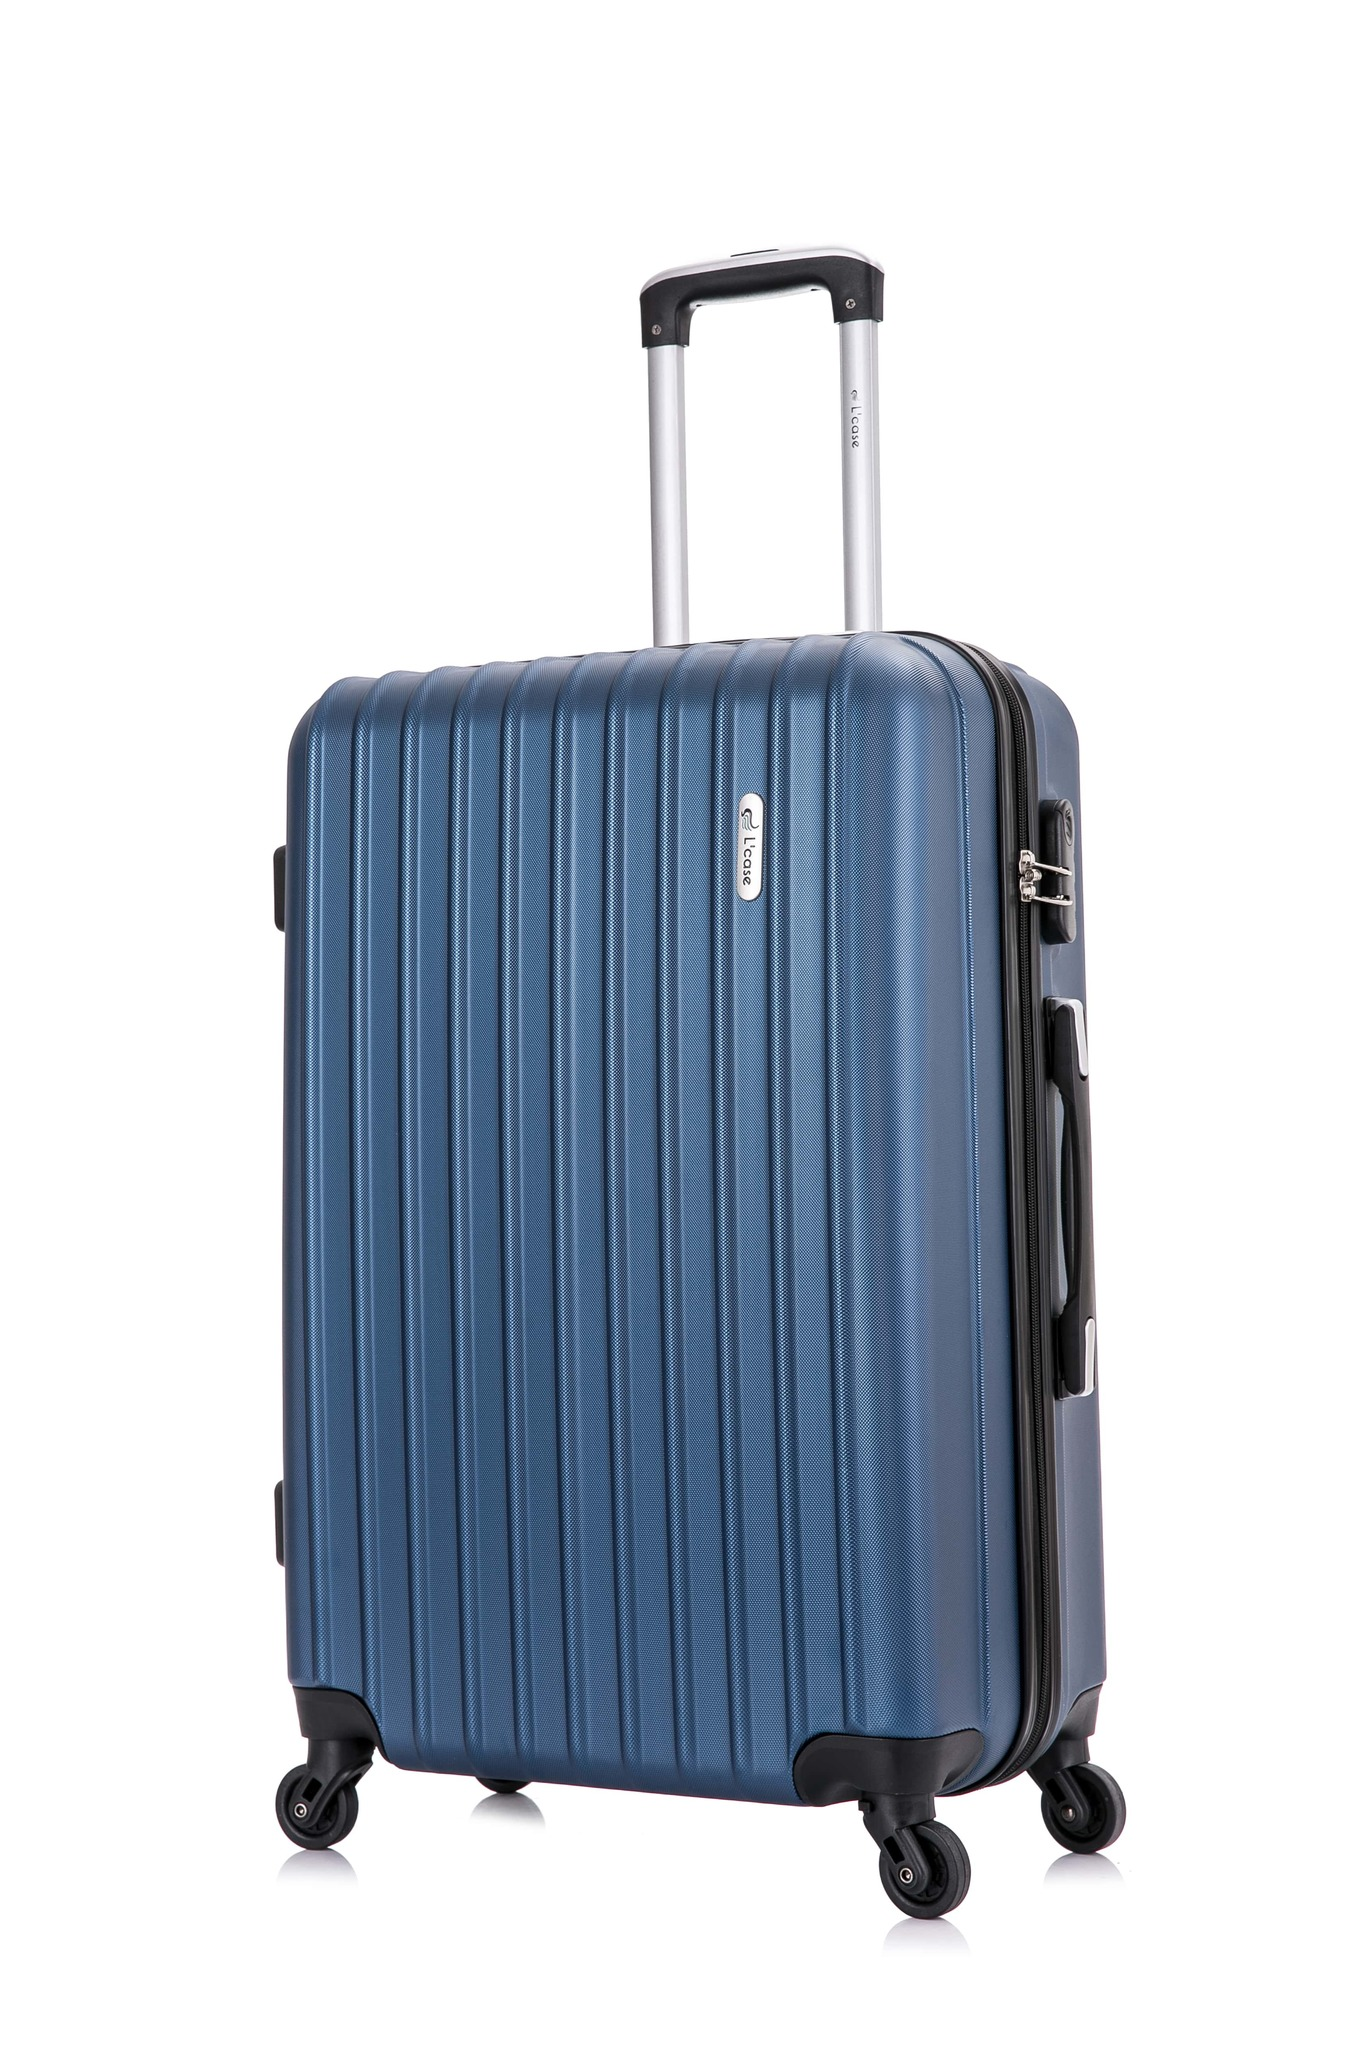 Suitcase Krabi Dark Blue Suitcase Carry-on Luggage Classic Travel Trip Luggage Case Bag ABS+PC Suitcase Travel Trolley Luggage ABS+PC Suitcase Travel Trolley Luggage Business Business Trip